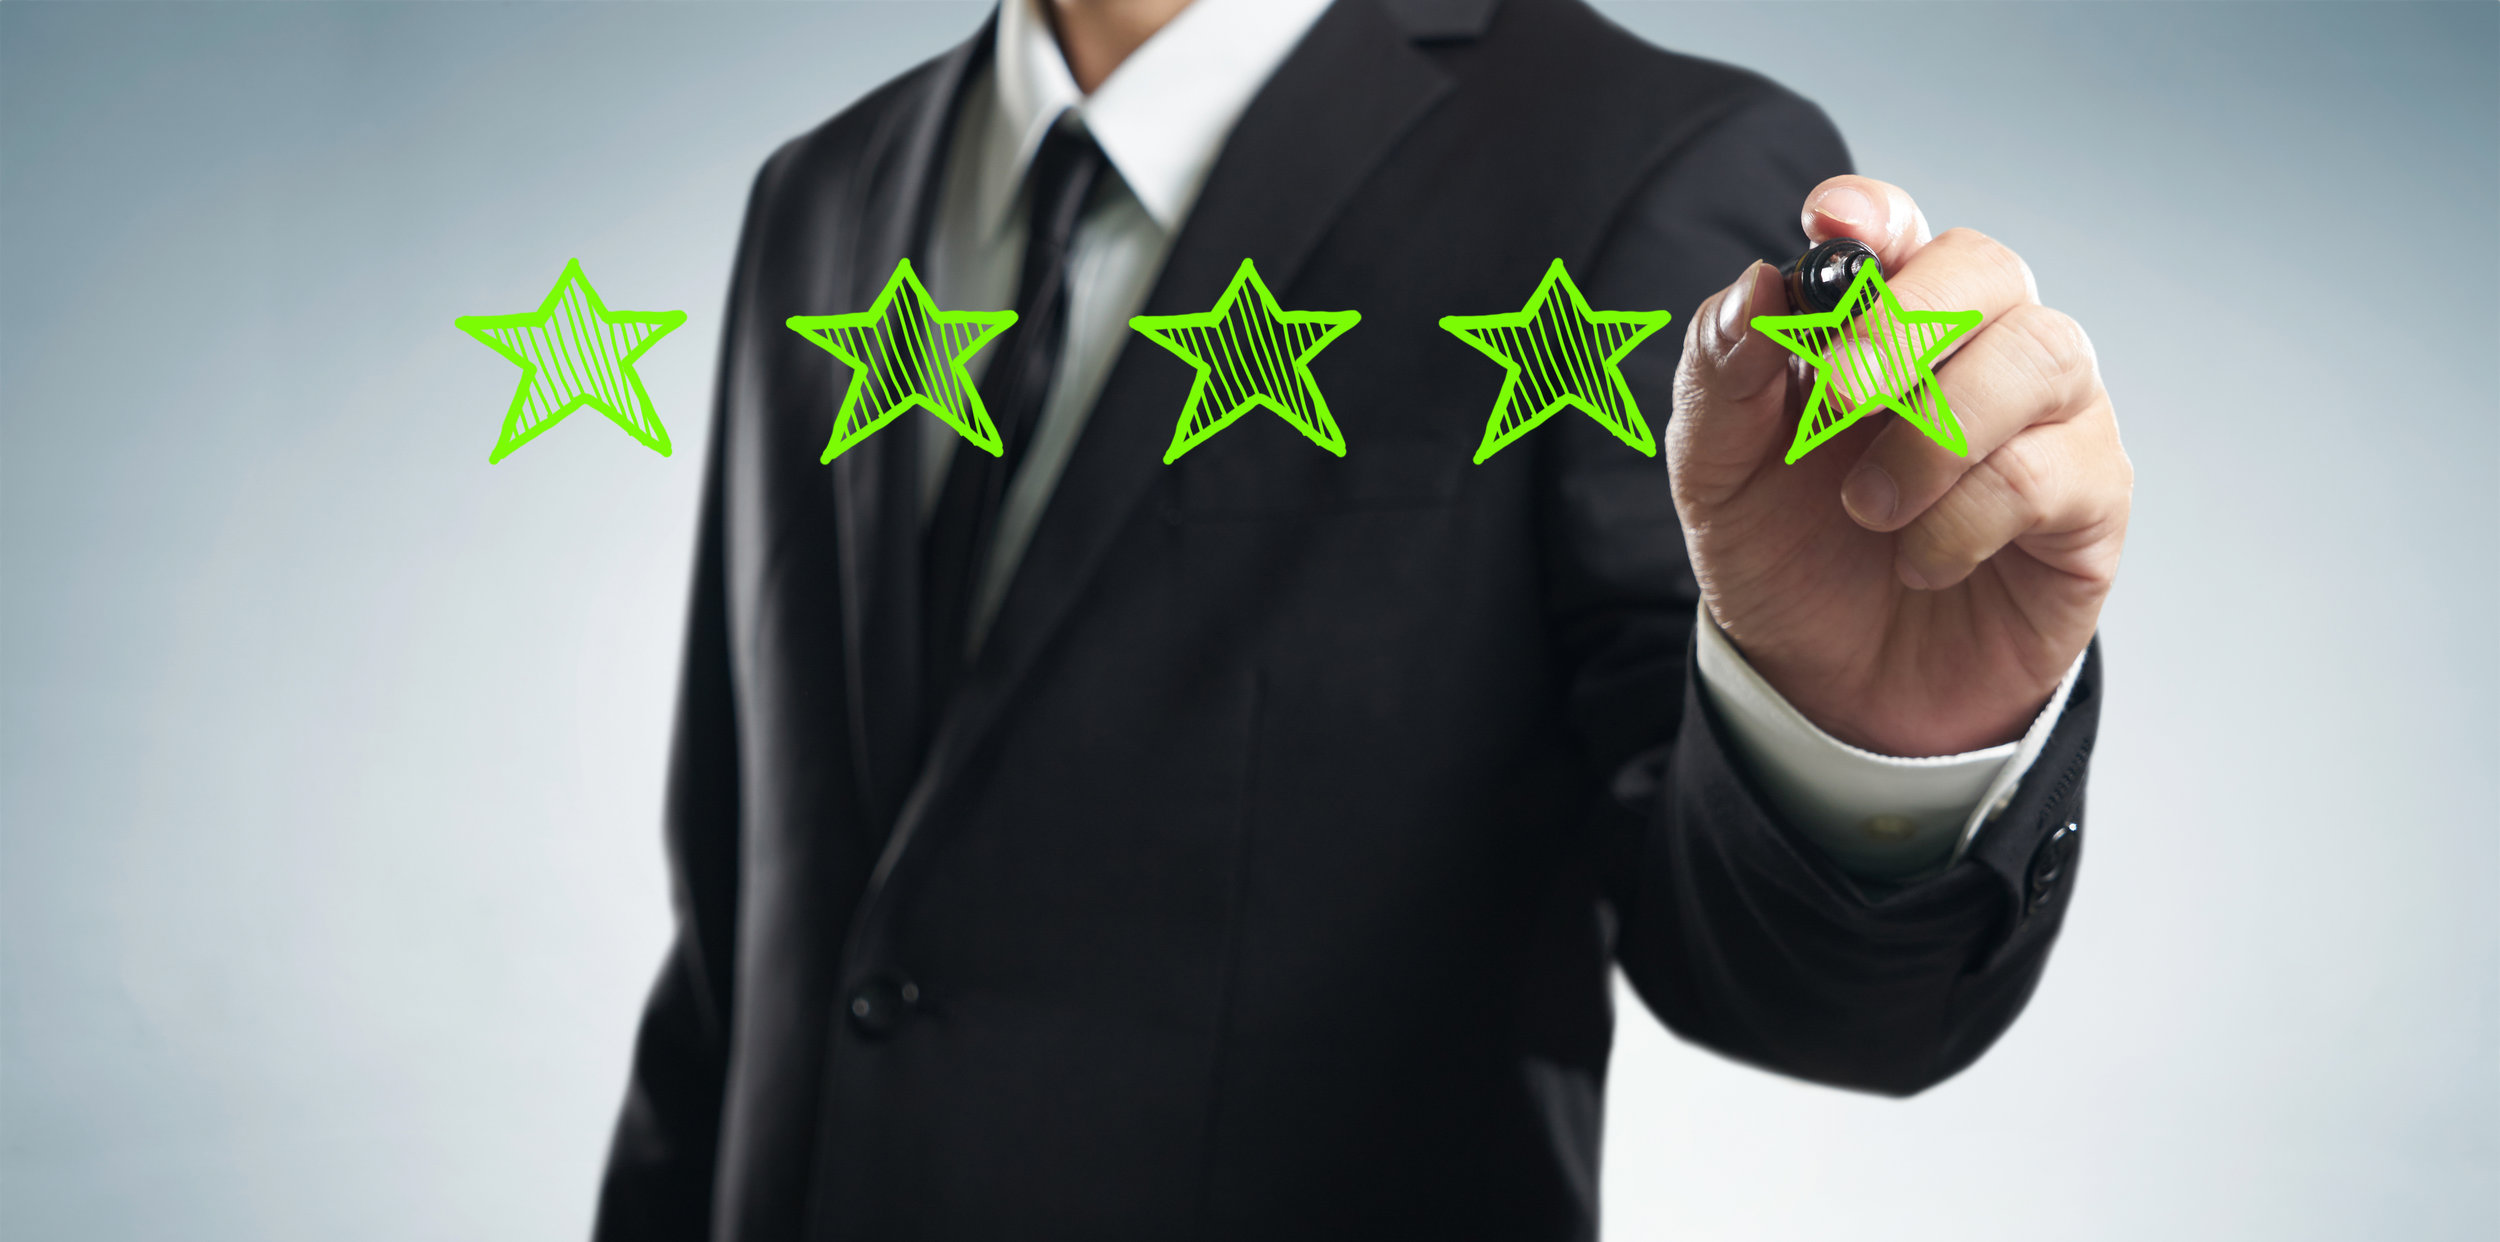 graphicstock-review-increase-rating-performance-and-classification-concept-businessman-draw-five-green-stars-to-increase-rating-of-his-company-blank-background_HOqevIiPese.jpg